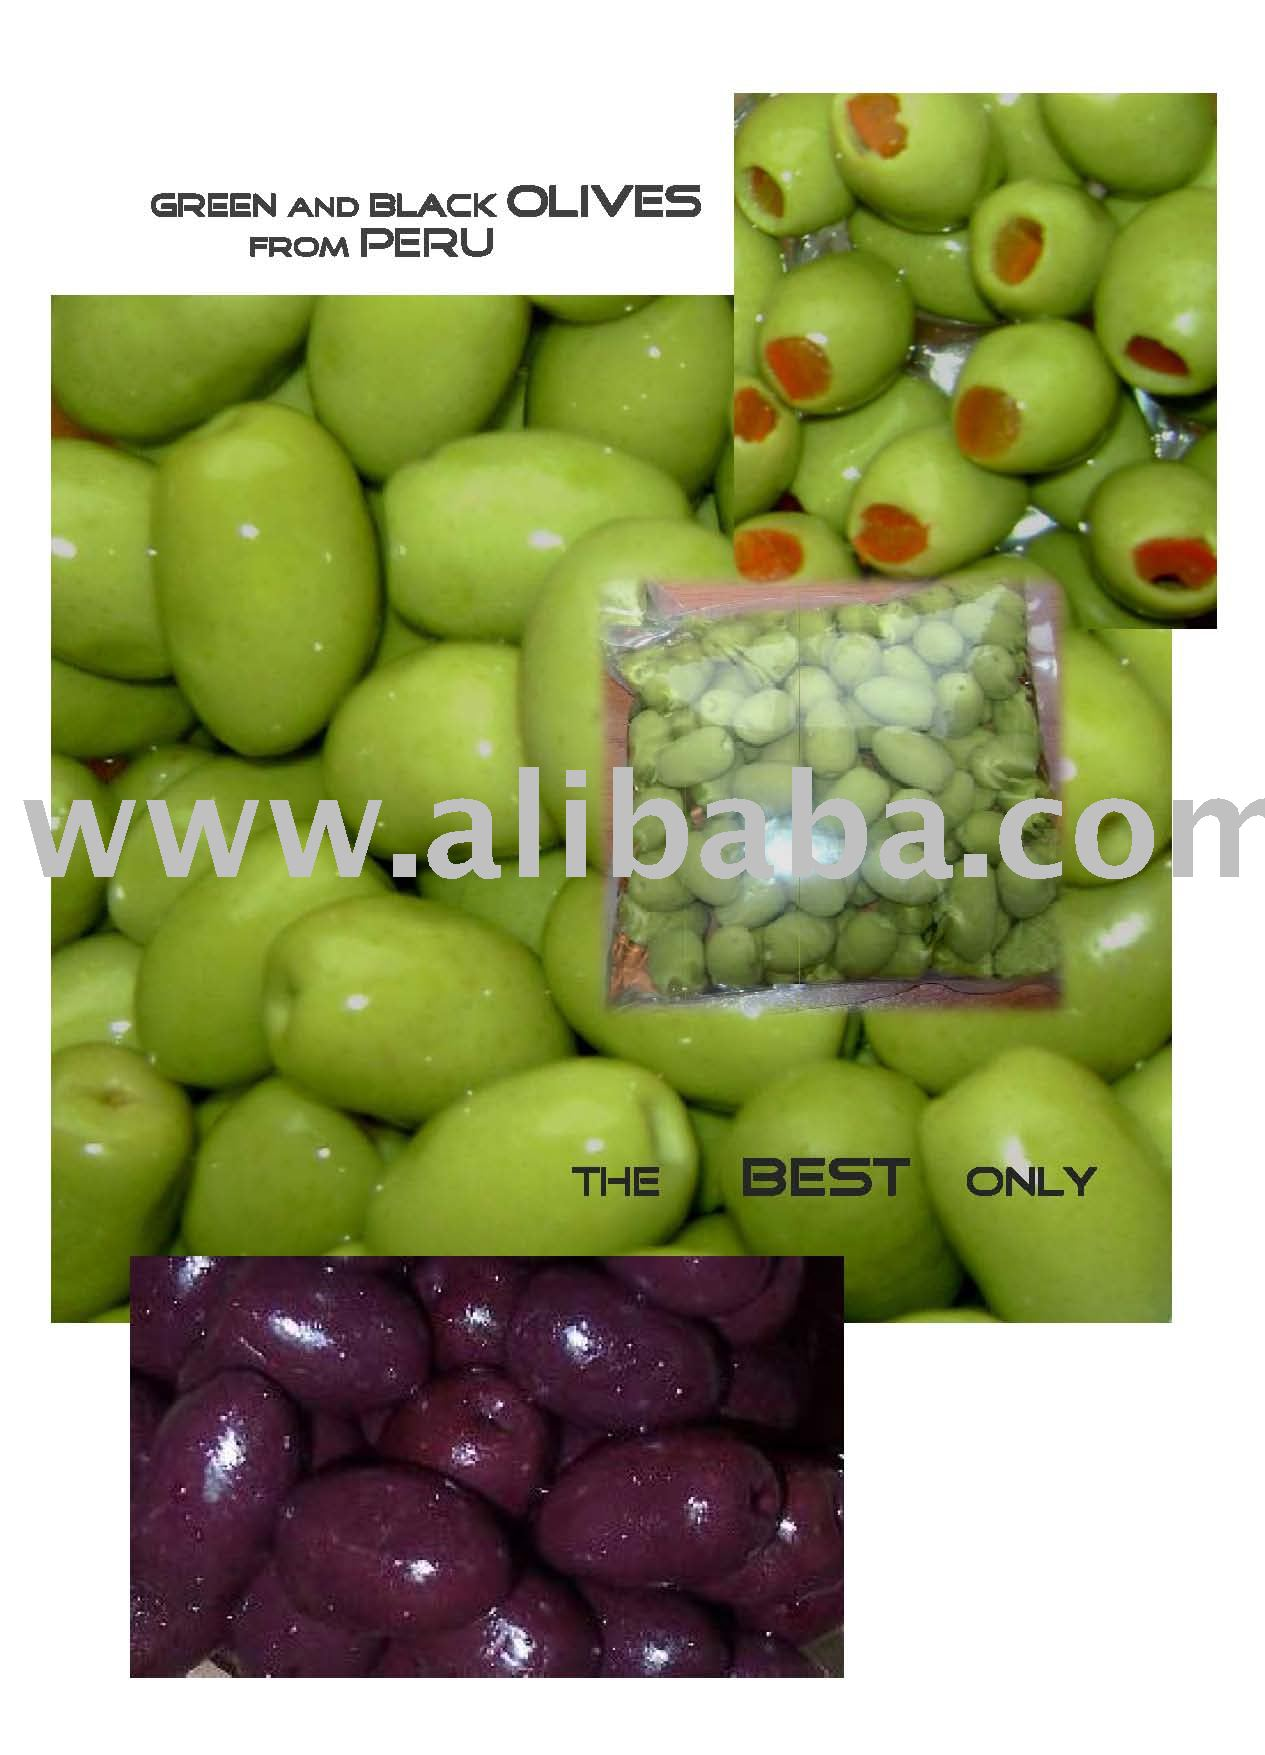 Best GREEN and BLACK OLIVES from Peru